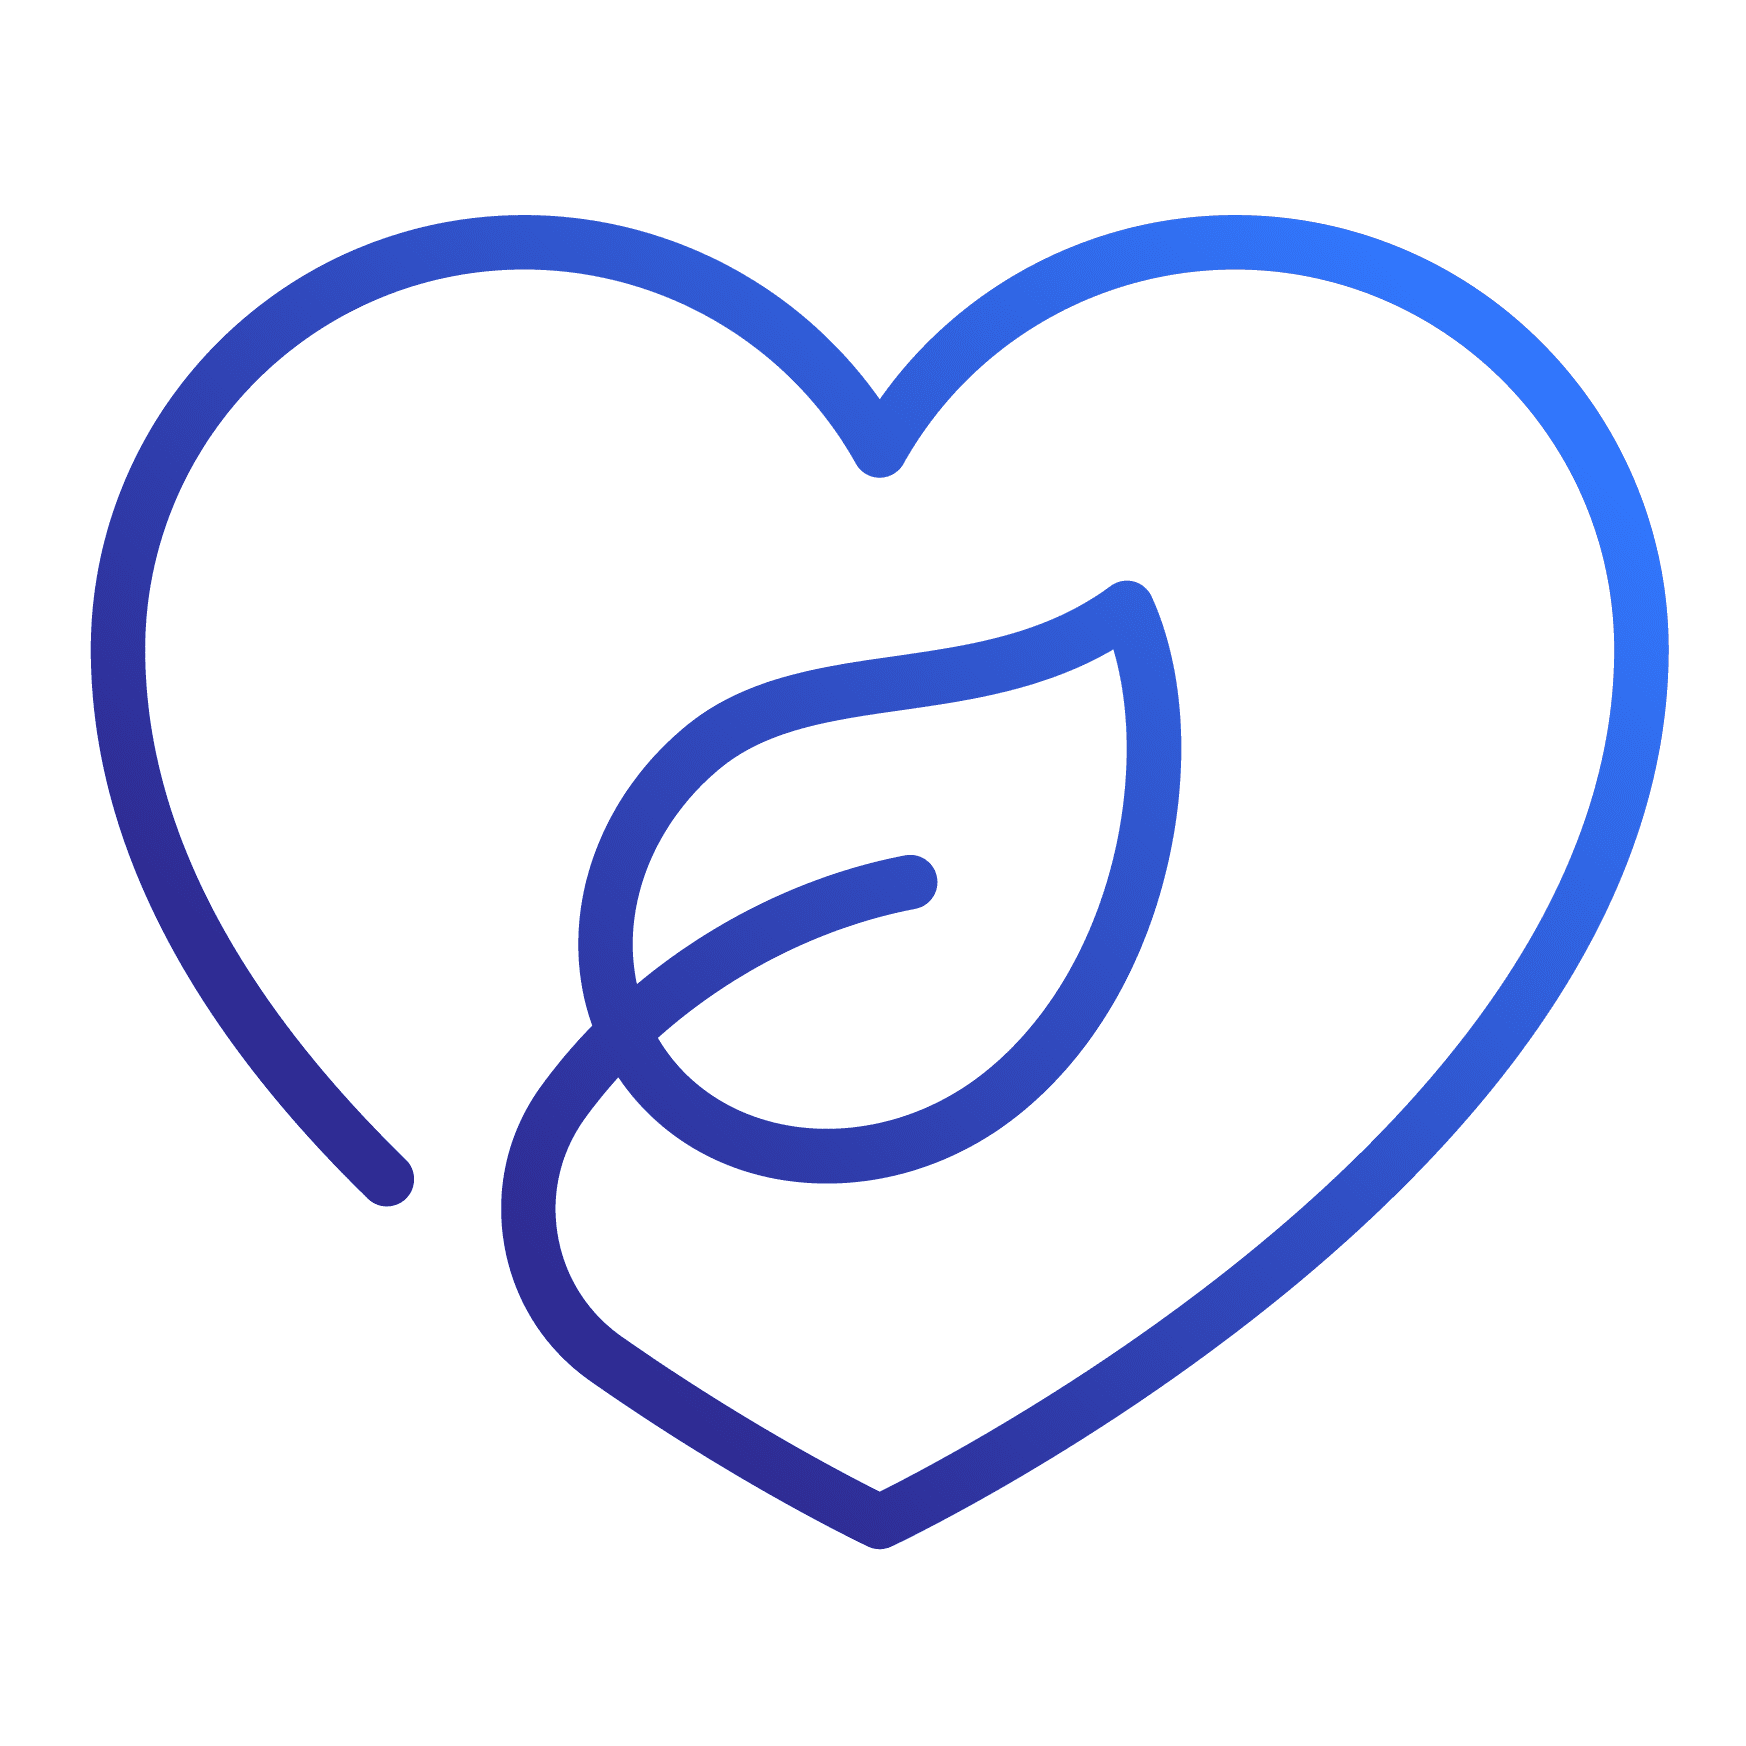 Sustainability icon of a heart with a leaf inside of it.